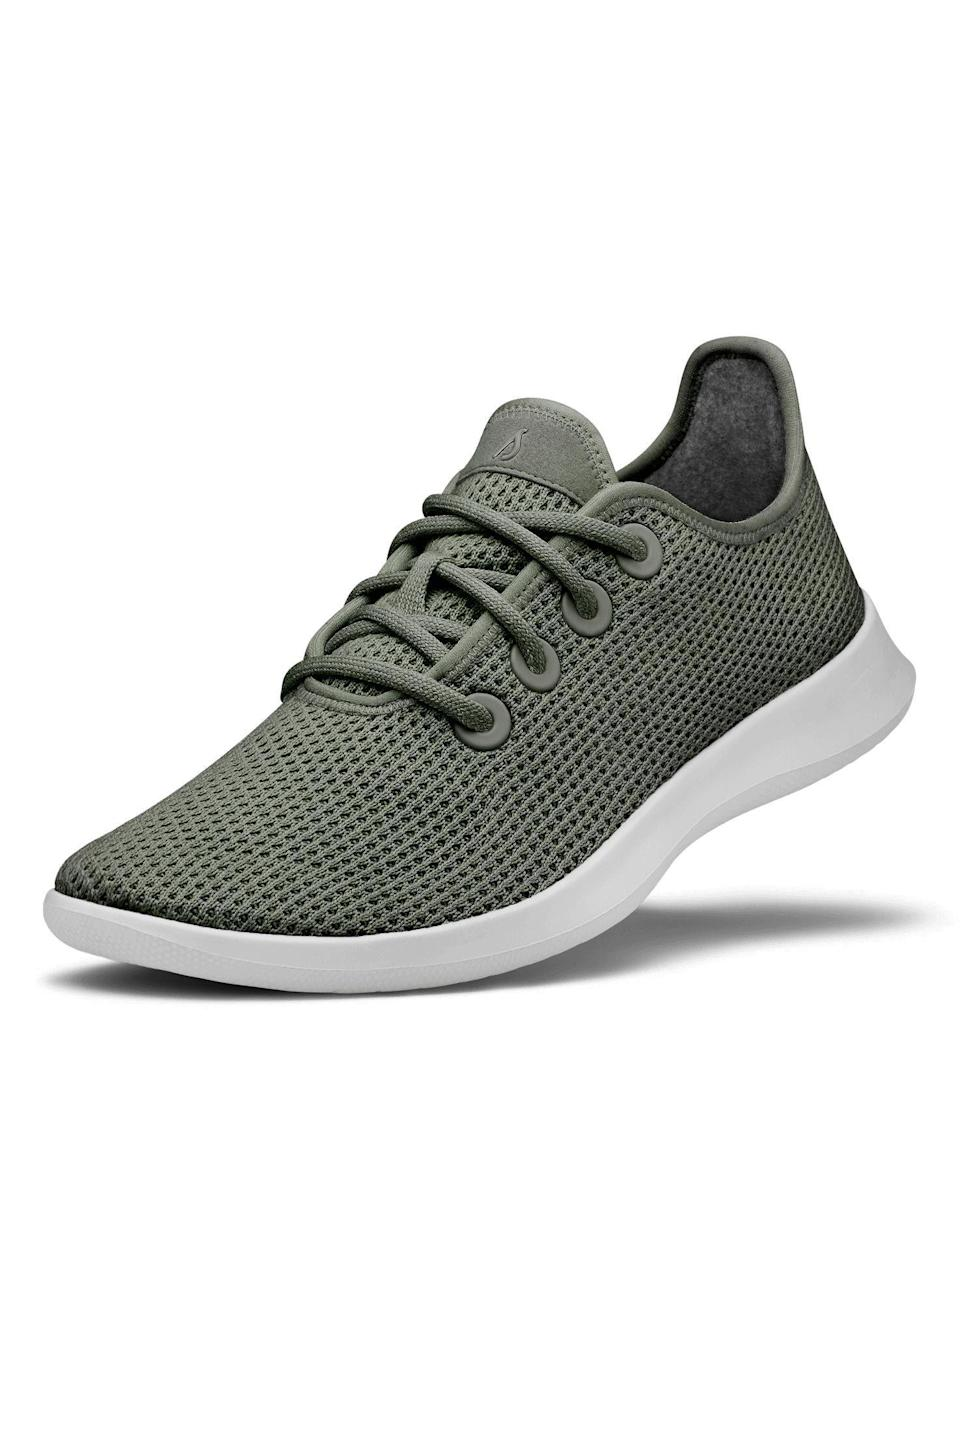 """<p><strong>Allbirds</strong></p><p>allbirds.com</p><p><strong>$95.00</strong></p><p><a href=""""https://go.redirectingat.com?id=74968X1596630&url=https%3A%2F%2Fwww.allbirds.com%2Fproducts%2Fwomens-tree-runners&sref=https%3A%2F%2Fwww.goodhousekeeping.com%2Fhealth-products%2Fg26960479%2Fbest-walking-shoes-for-women%2F"""" rel=""""nofollow noopener"""" target=""""_blank"""" data-ylk=""""slk:Shop Now"""" class=""""link rapid-noclick-resp"""">Shop Now</a></p><p><a href=""""https://www.goodhousekeeping.com/clothing/a28969437/allbirds-sneakers-review/"""" rel=""""nofollow noopener"""" target=""""_blank"""" data-ylk=""""slk:Allbirds sneakers"""" class=""""link rapid-noclick-resp"""">Allbirds sneakers</a> are a popular travel option since you can toss them right in the washer for easy cleaning after a long trip. A whopping <strong>91% of our tester panel gave these shoes a perfect rating for comfort</strong>. Reviewers love them for travel, saying """"I walked for 12 miles in one day with them and my feet didn't hurt."""" We also love that this style gives you the option to go sock-free too.<br></p>"""